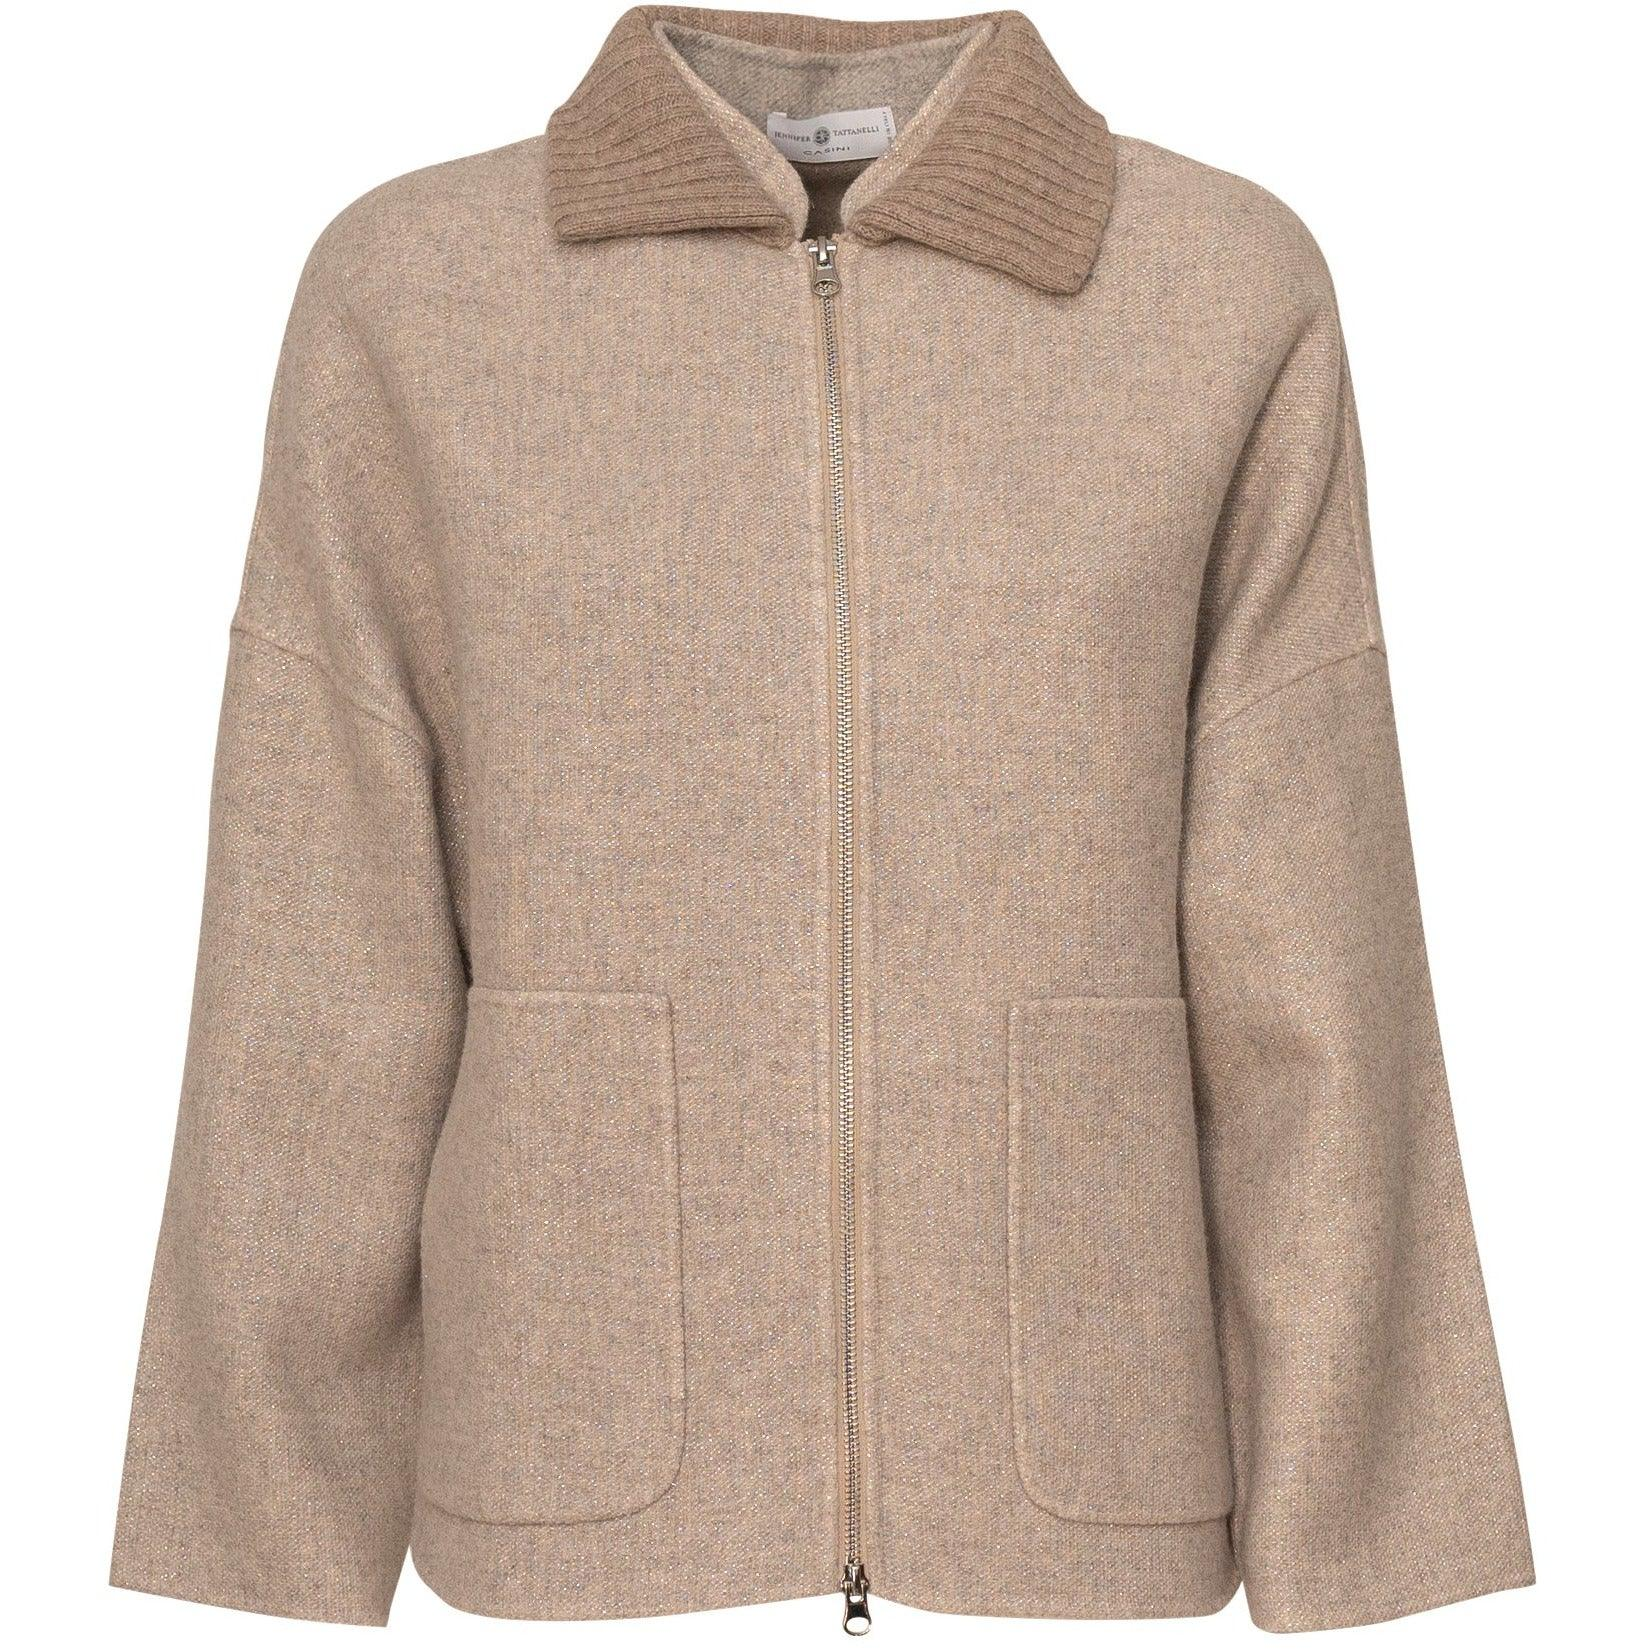 Women Coat Knitwear in Beige